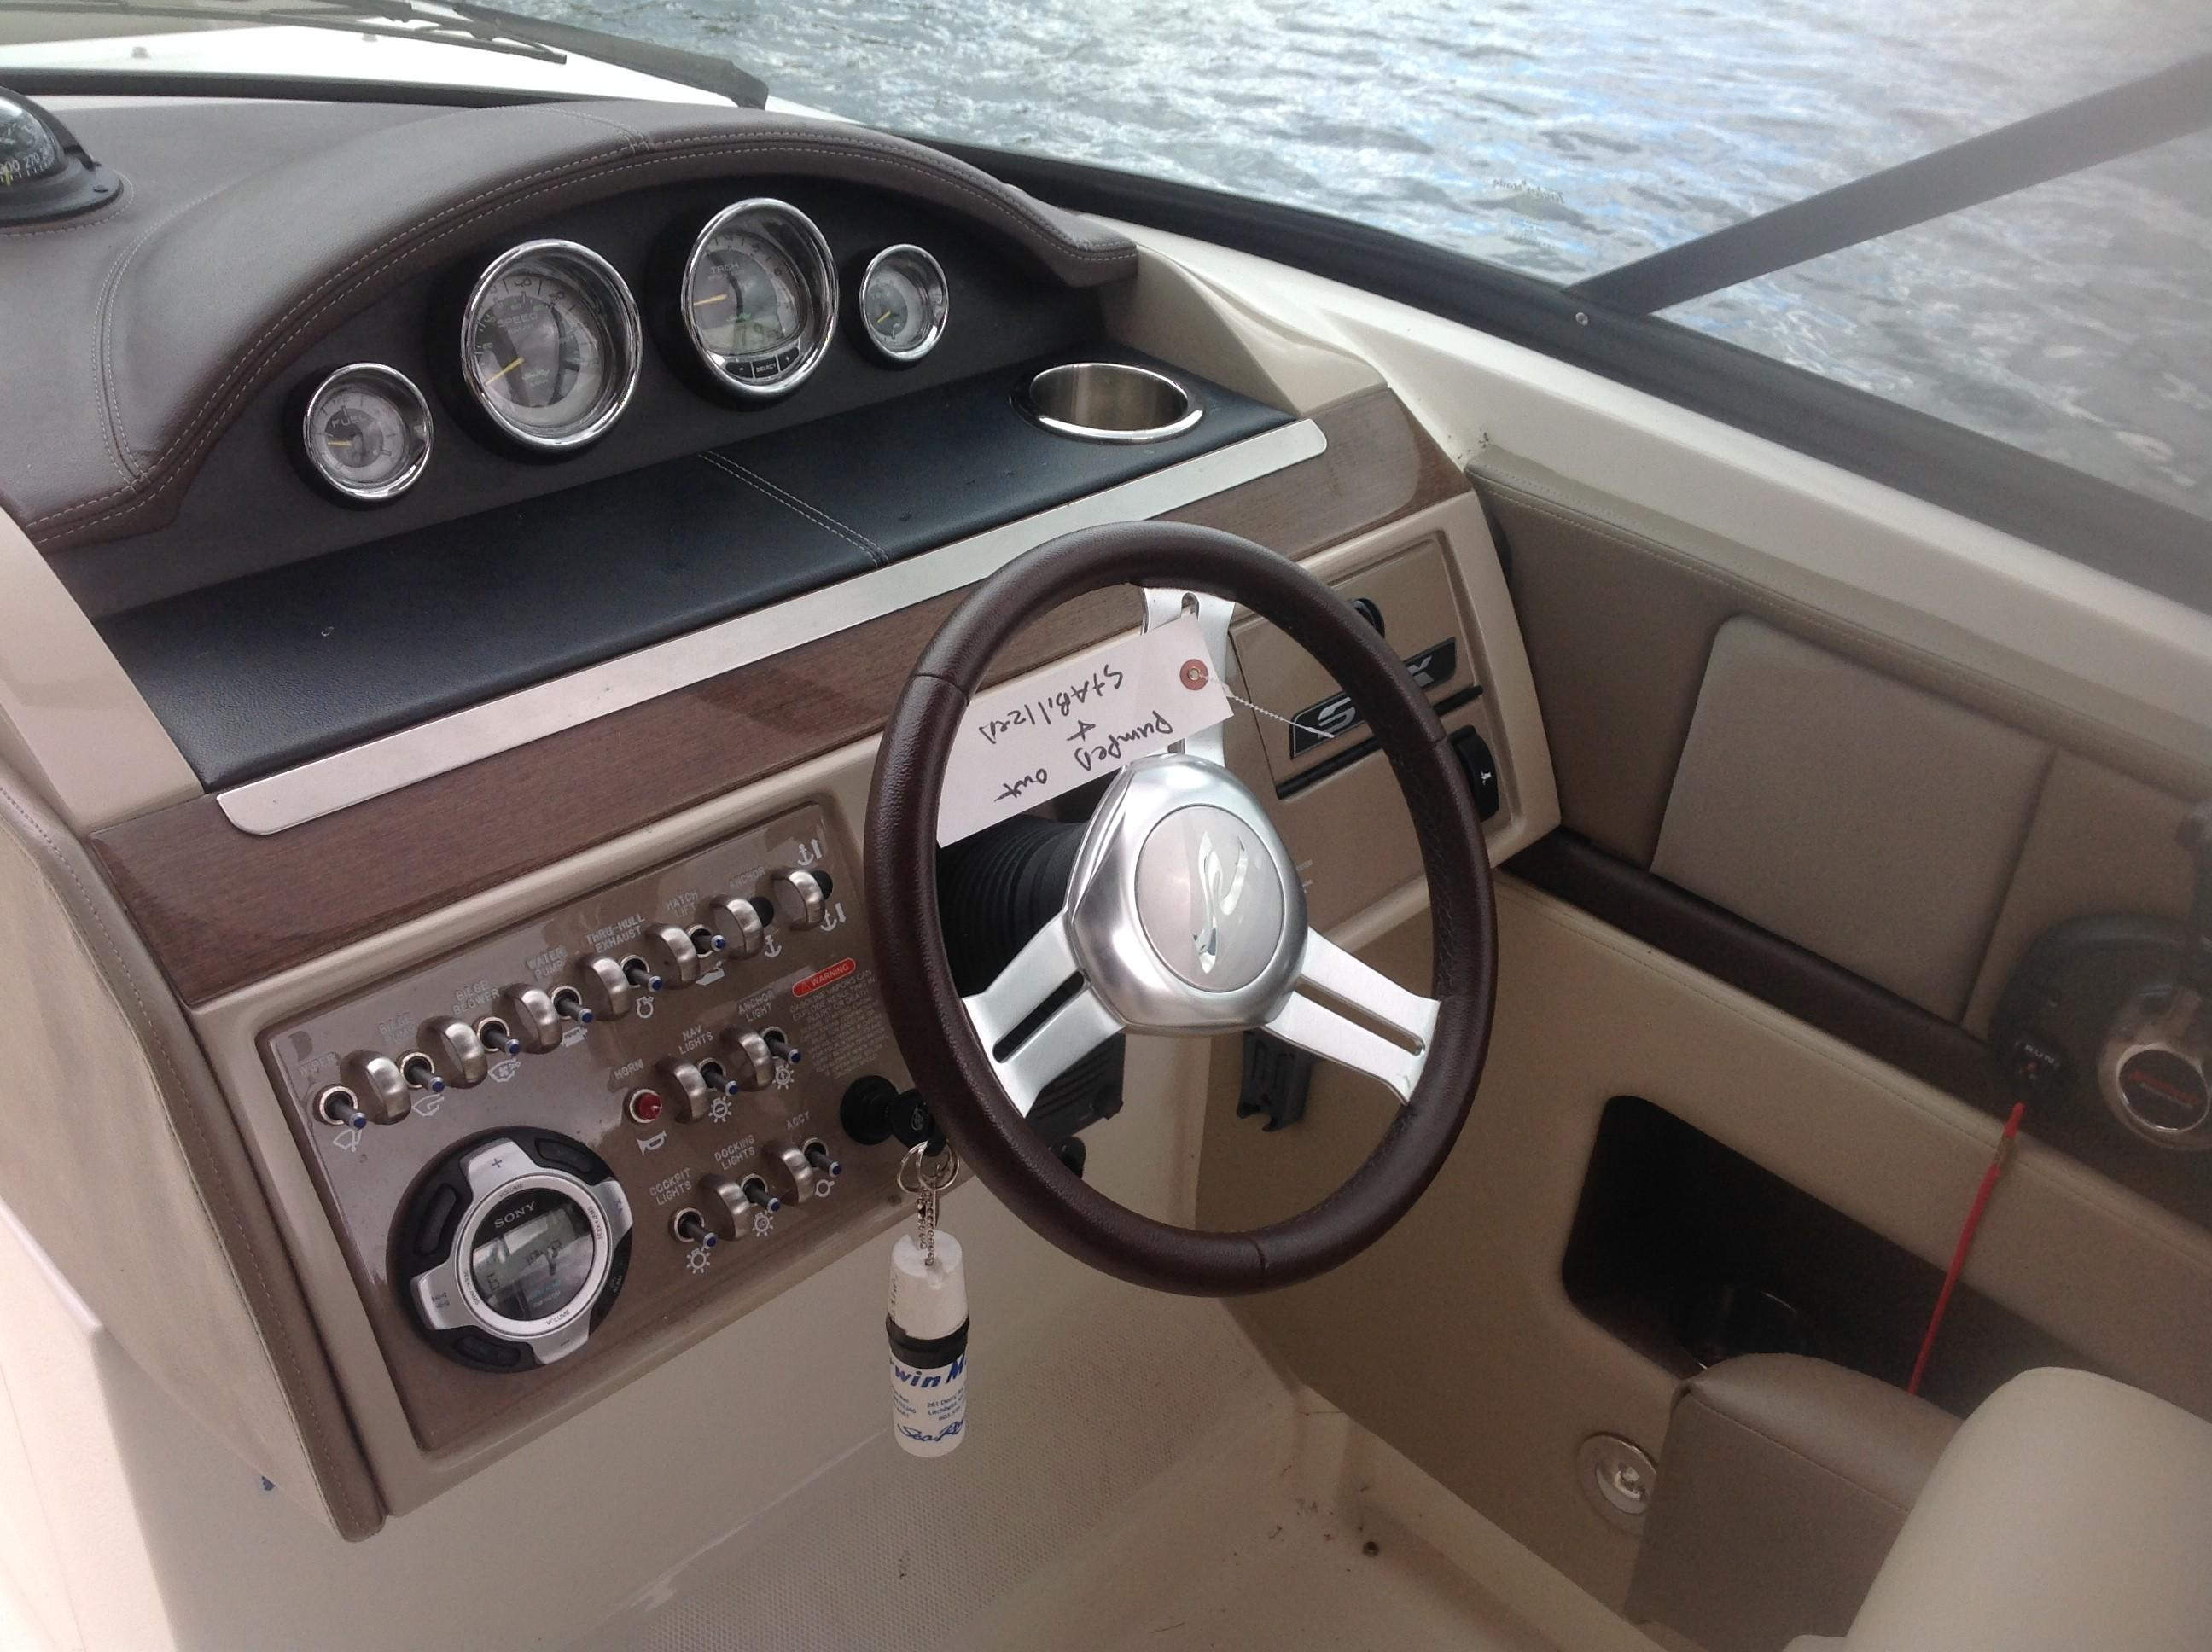 2011 Sea Ray boat for sale, model of the boat is 270 SLX & Image # 5 of 13